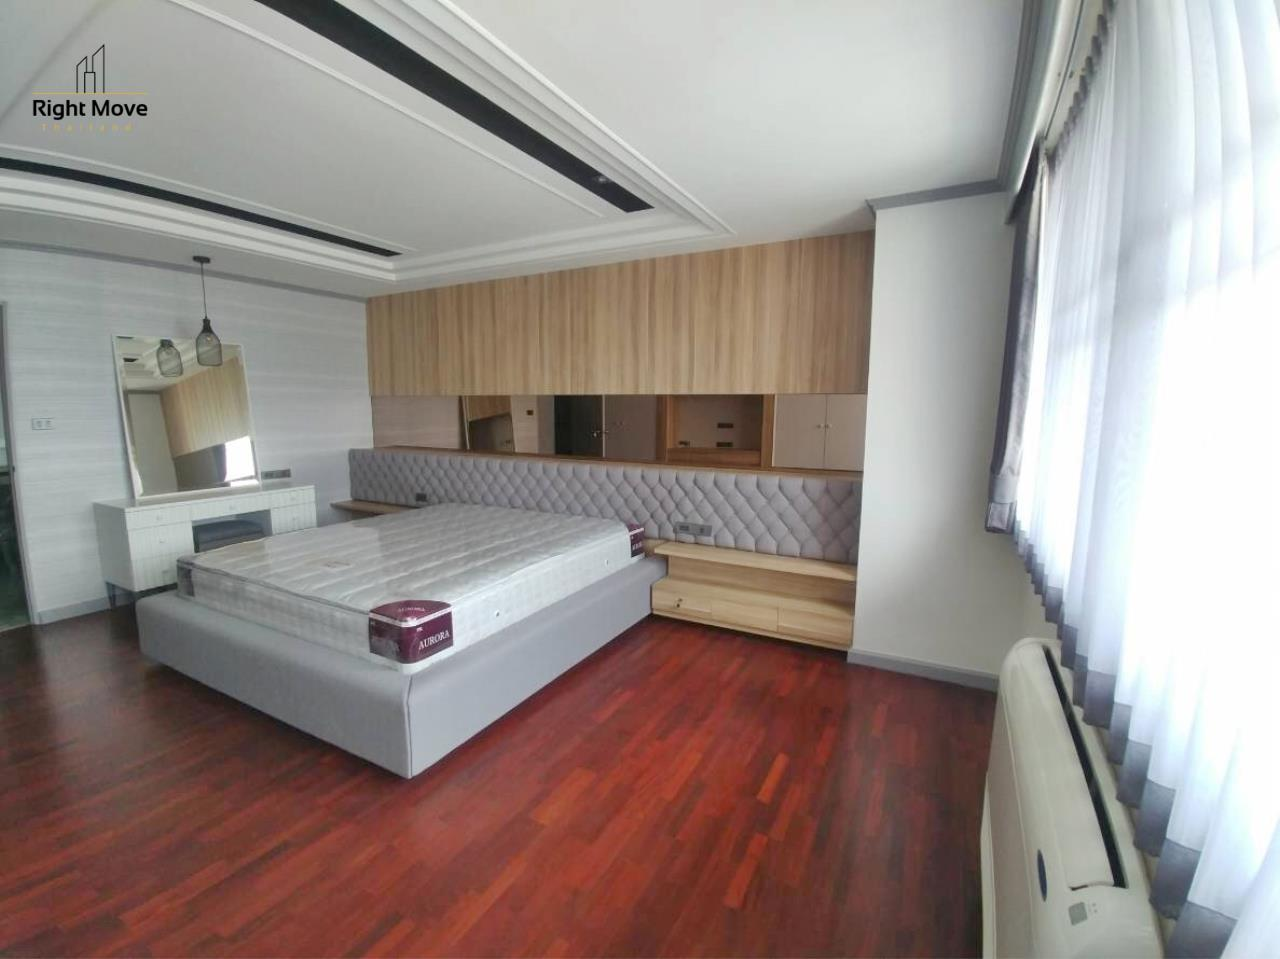 Right Move Thailand Agency's CA5888 D.S. Tower I for rent 100,000THB - 3 bedrooms - 202 sqm. 1